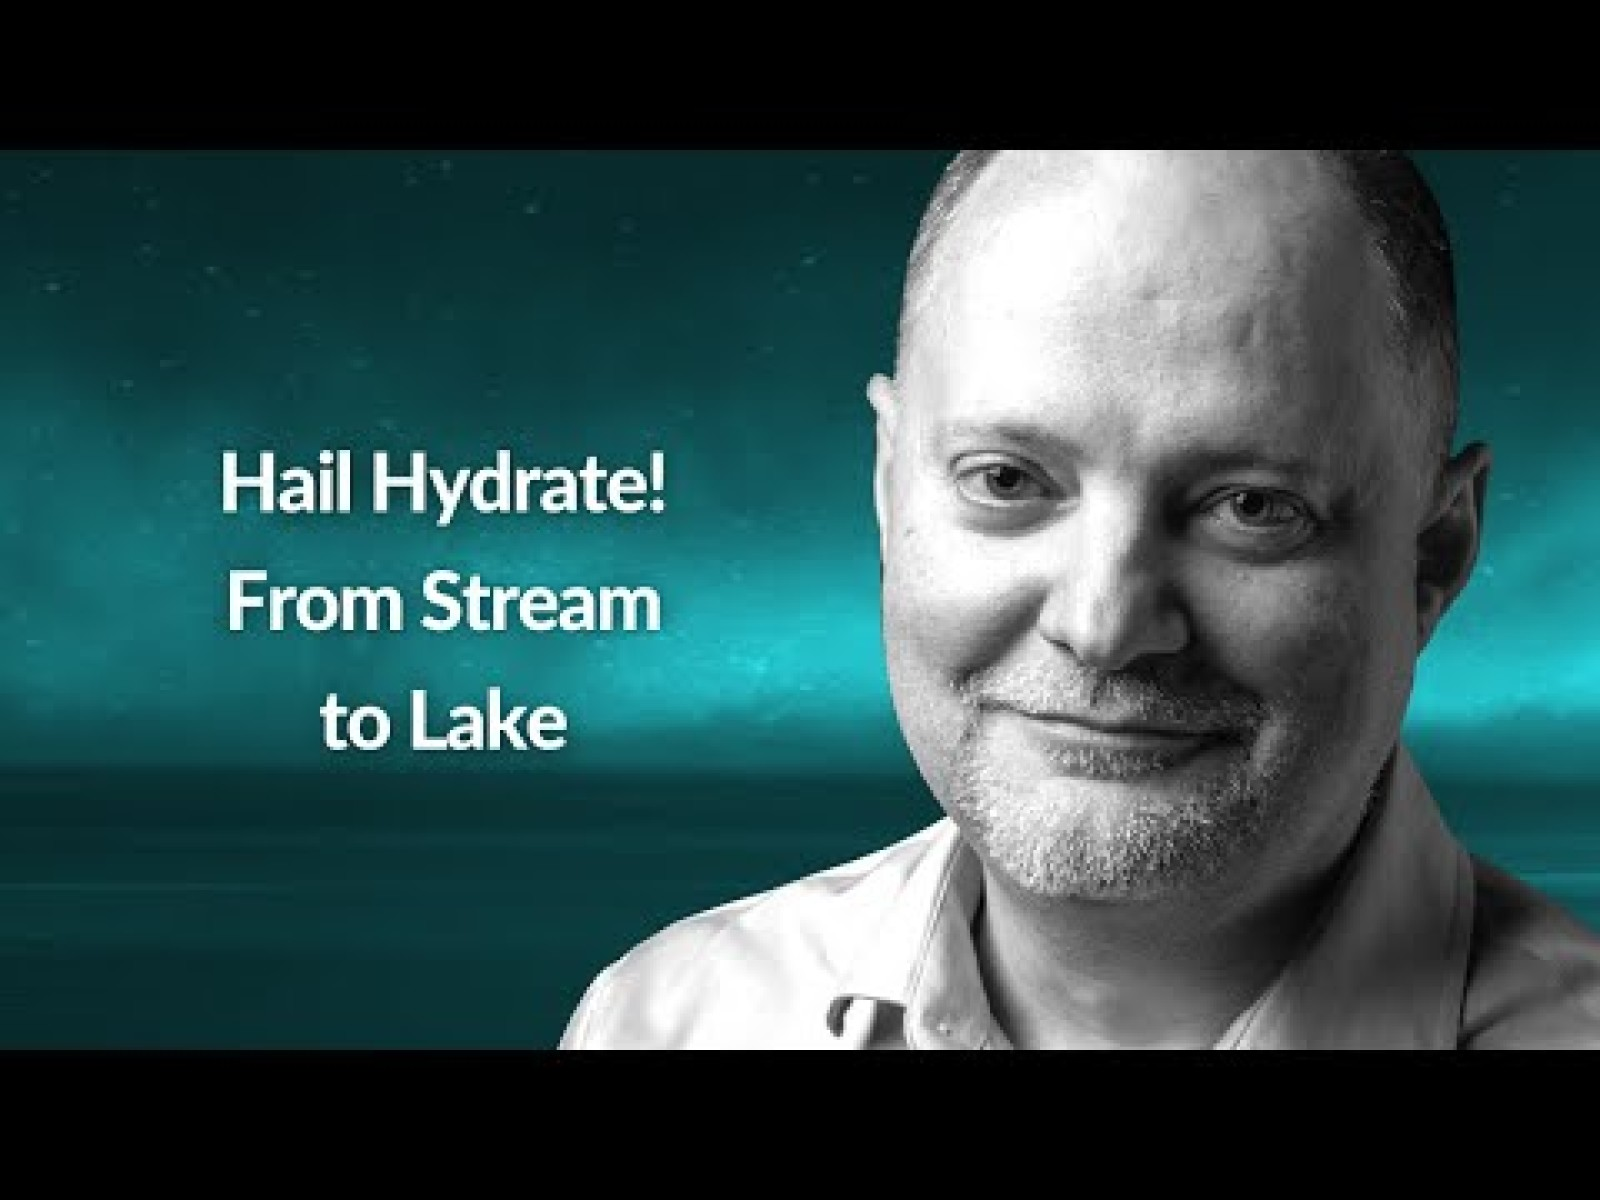 Hail Hydrate! From Stream to Lake